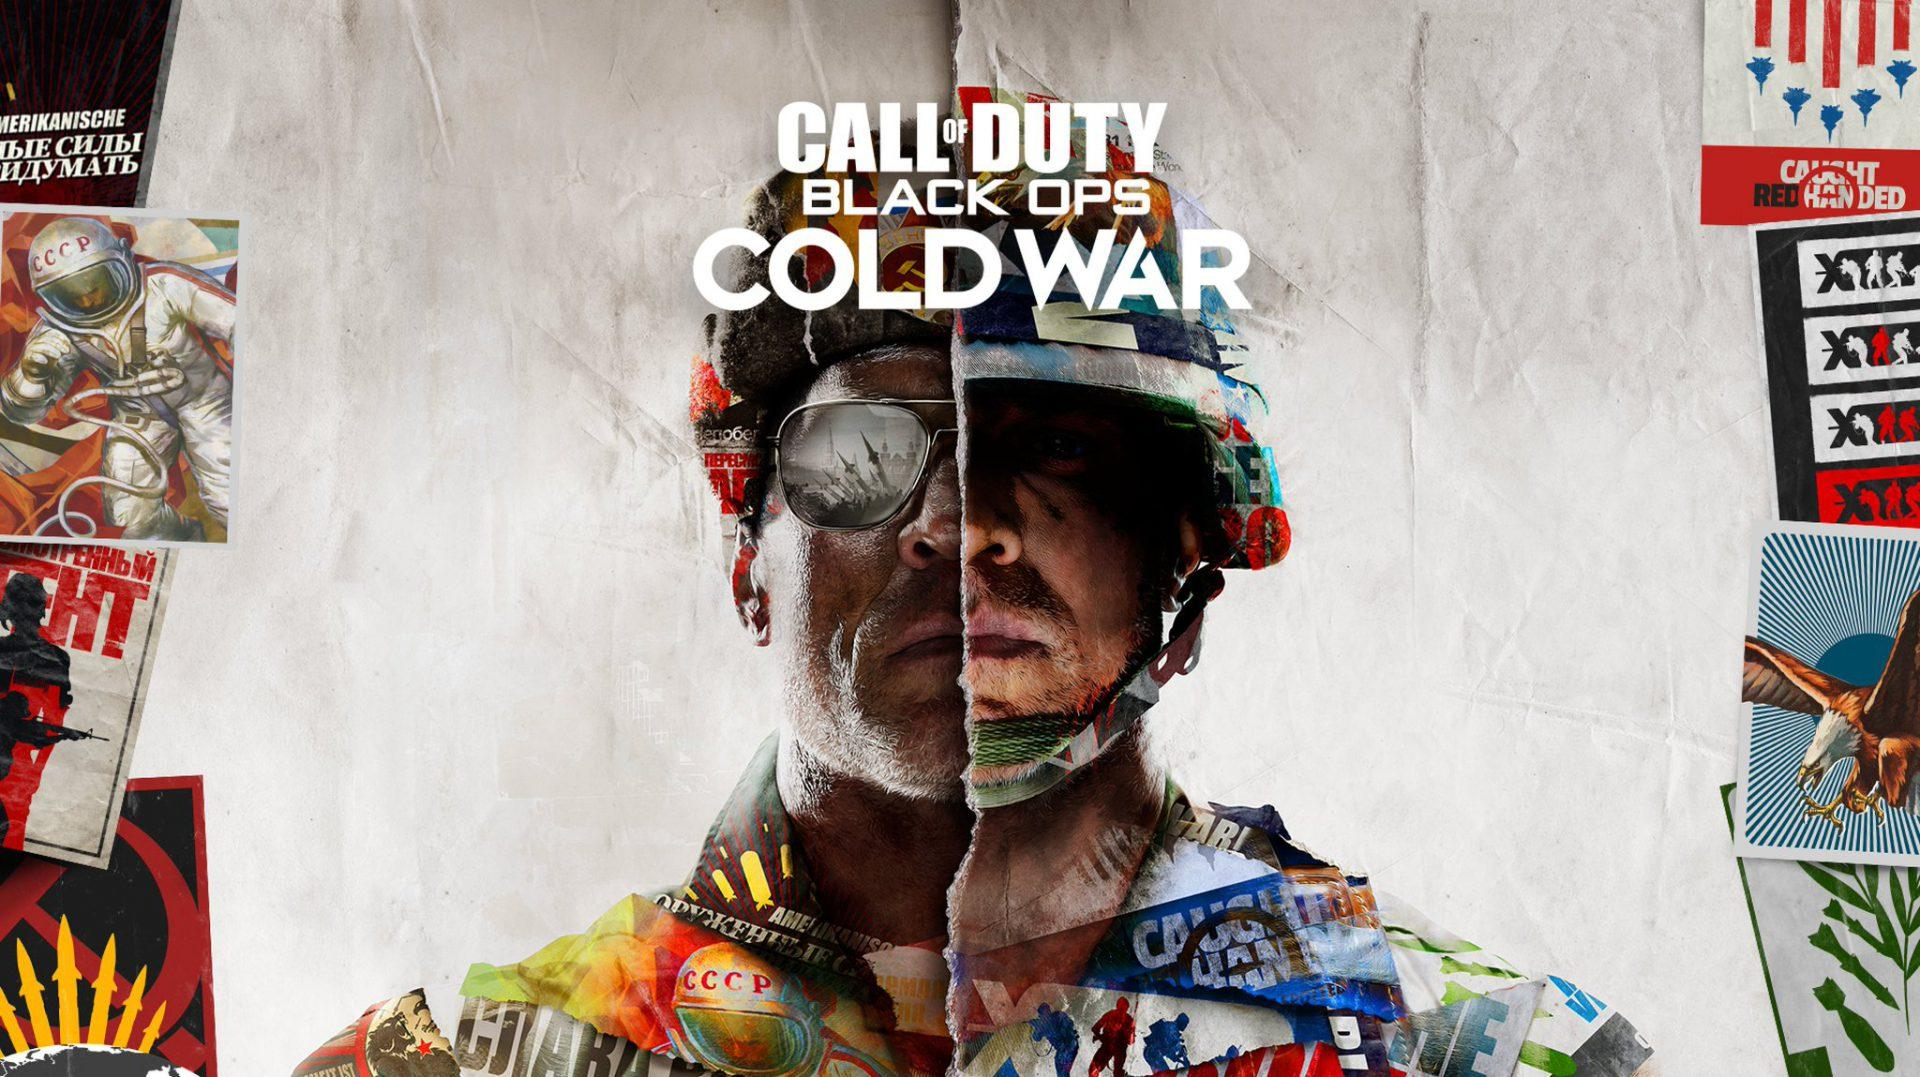 Call Of Duty Black Ops: Cold War Sera Disponible Sur